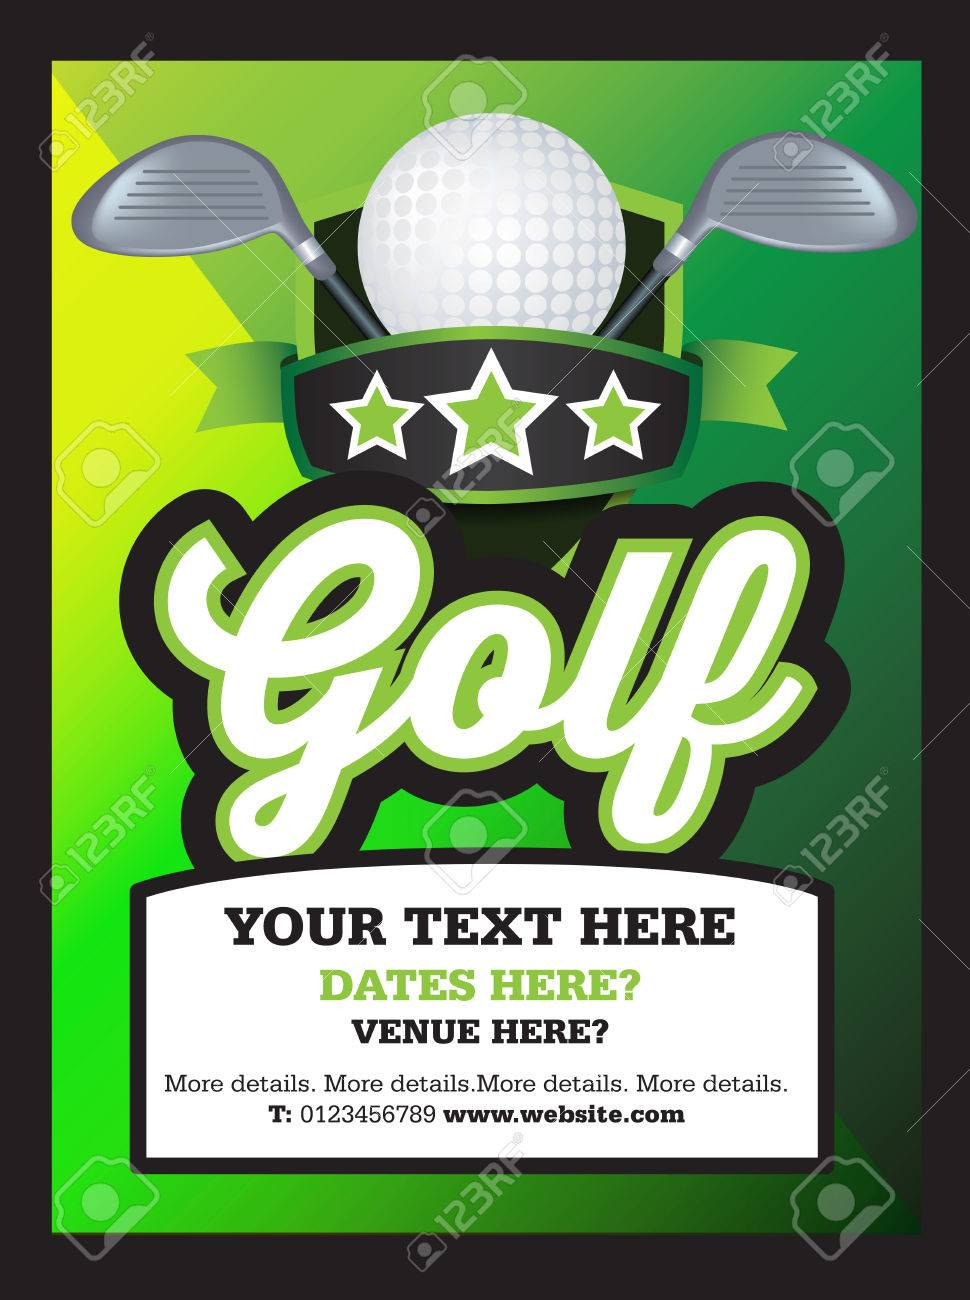 poster ad advertisement marketing or promotion flyer for a golf club or event stock vector